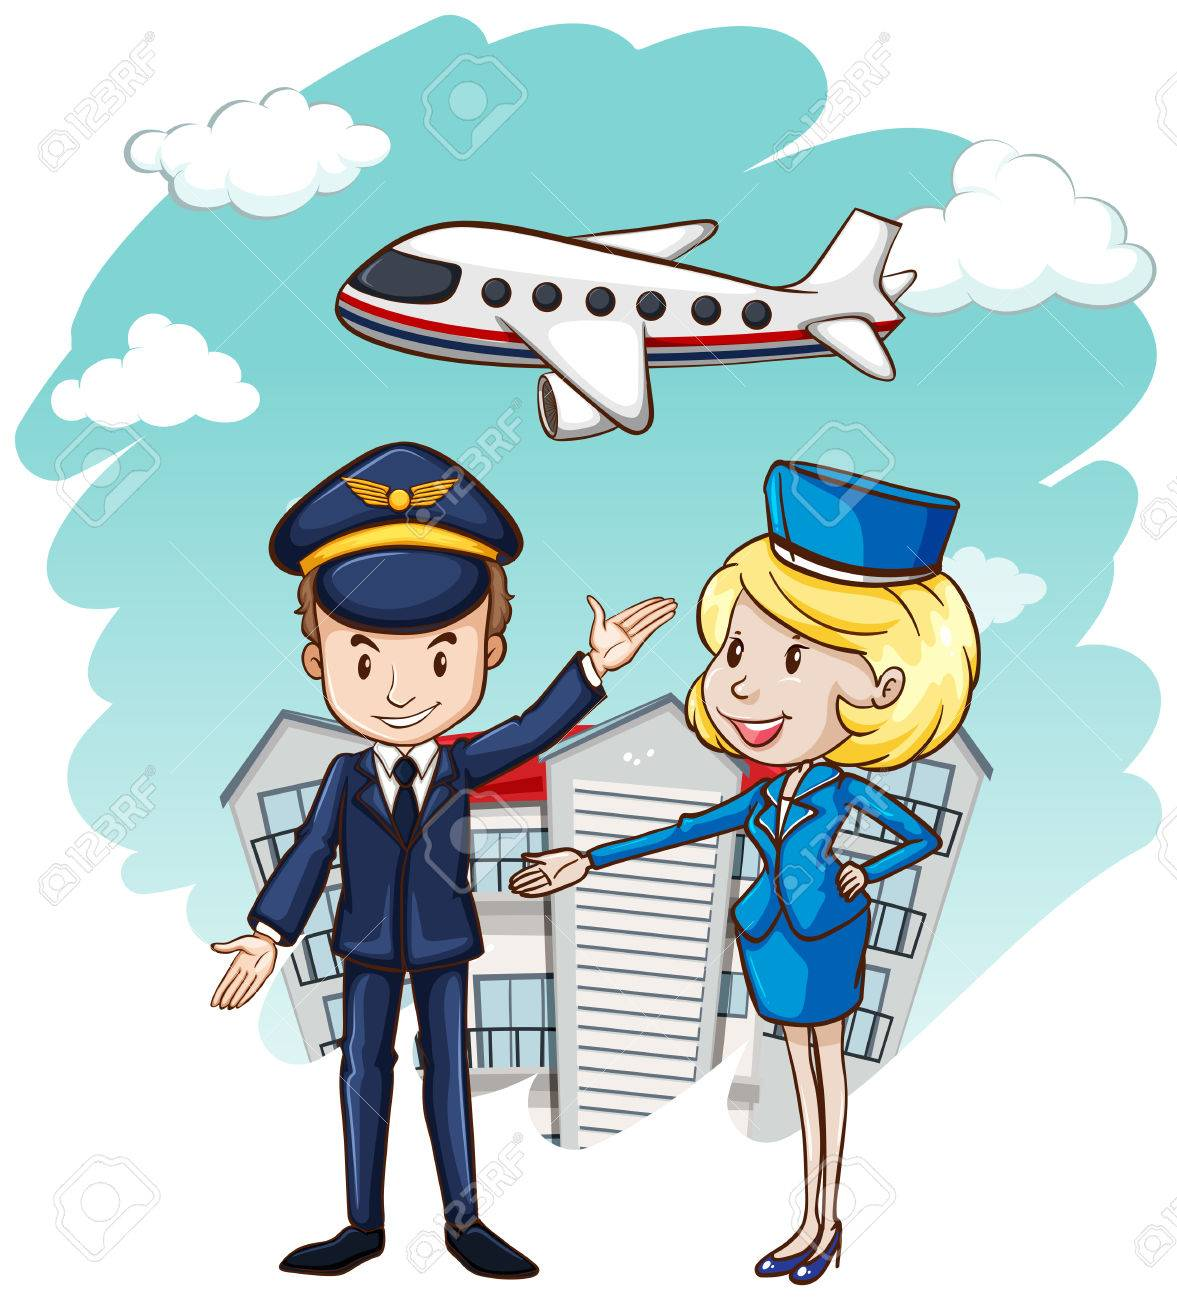 Pilot and flight attendant with airplane in background illustration.